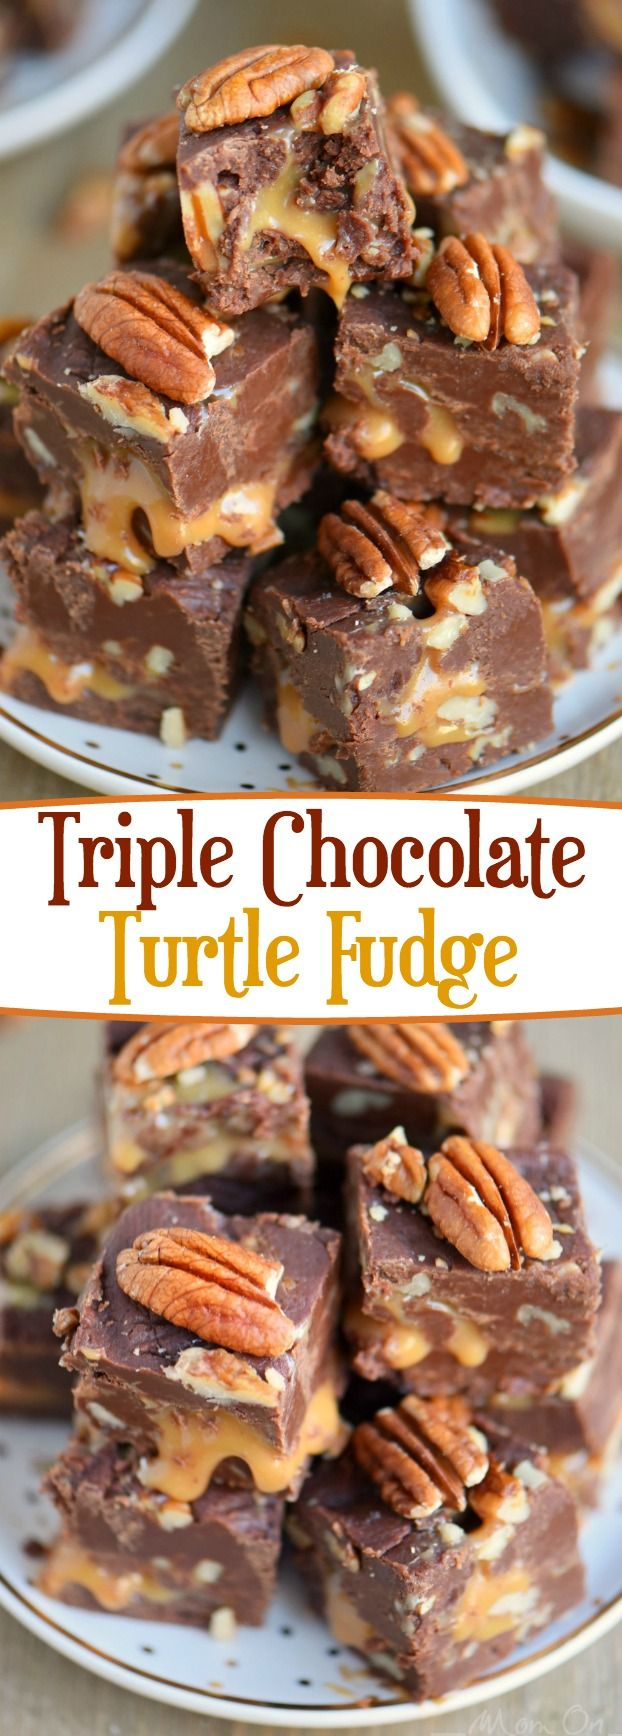 Best 25+ Chocolate turtles ideas on Pinterest | Brands of ...